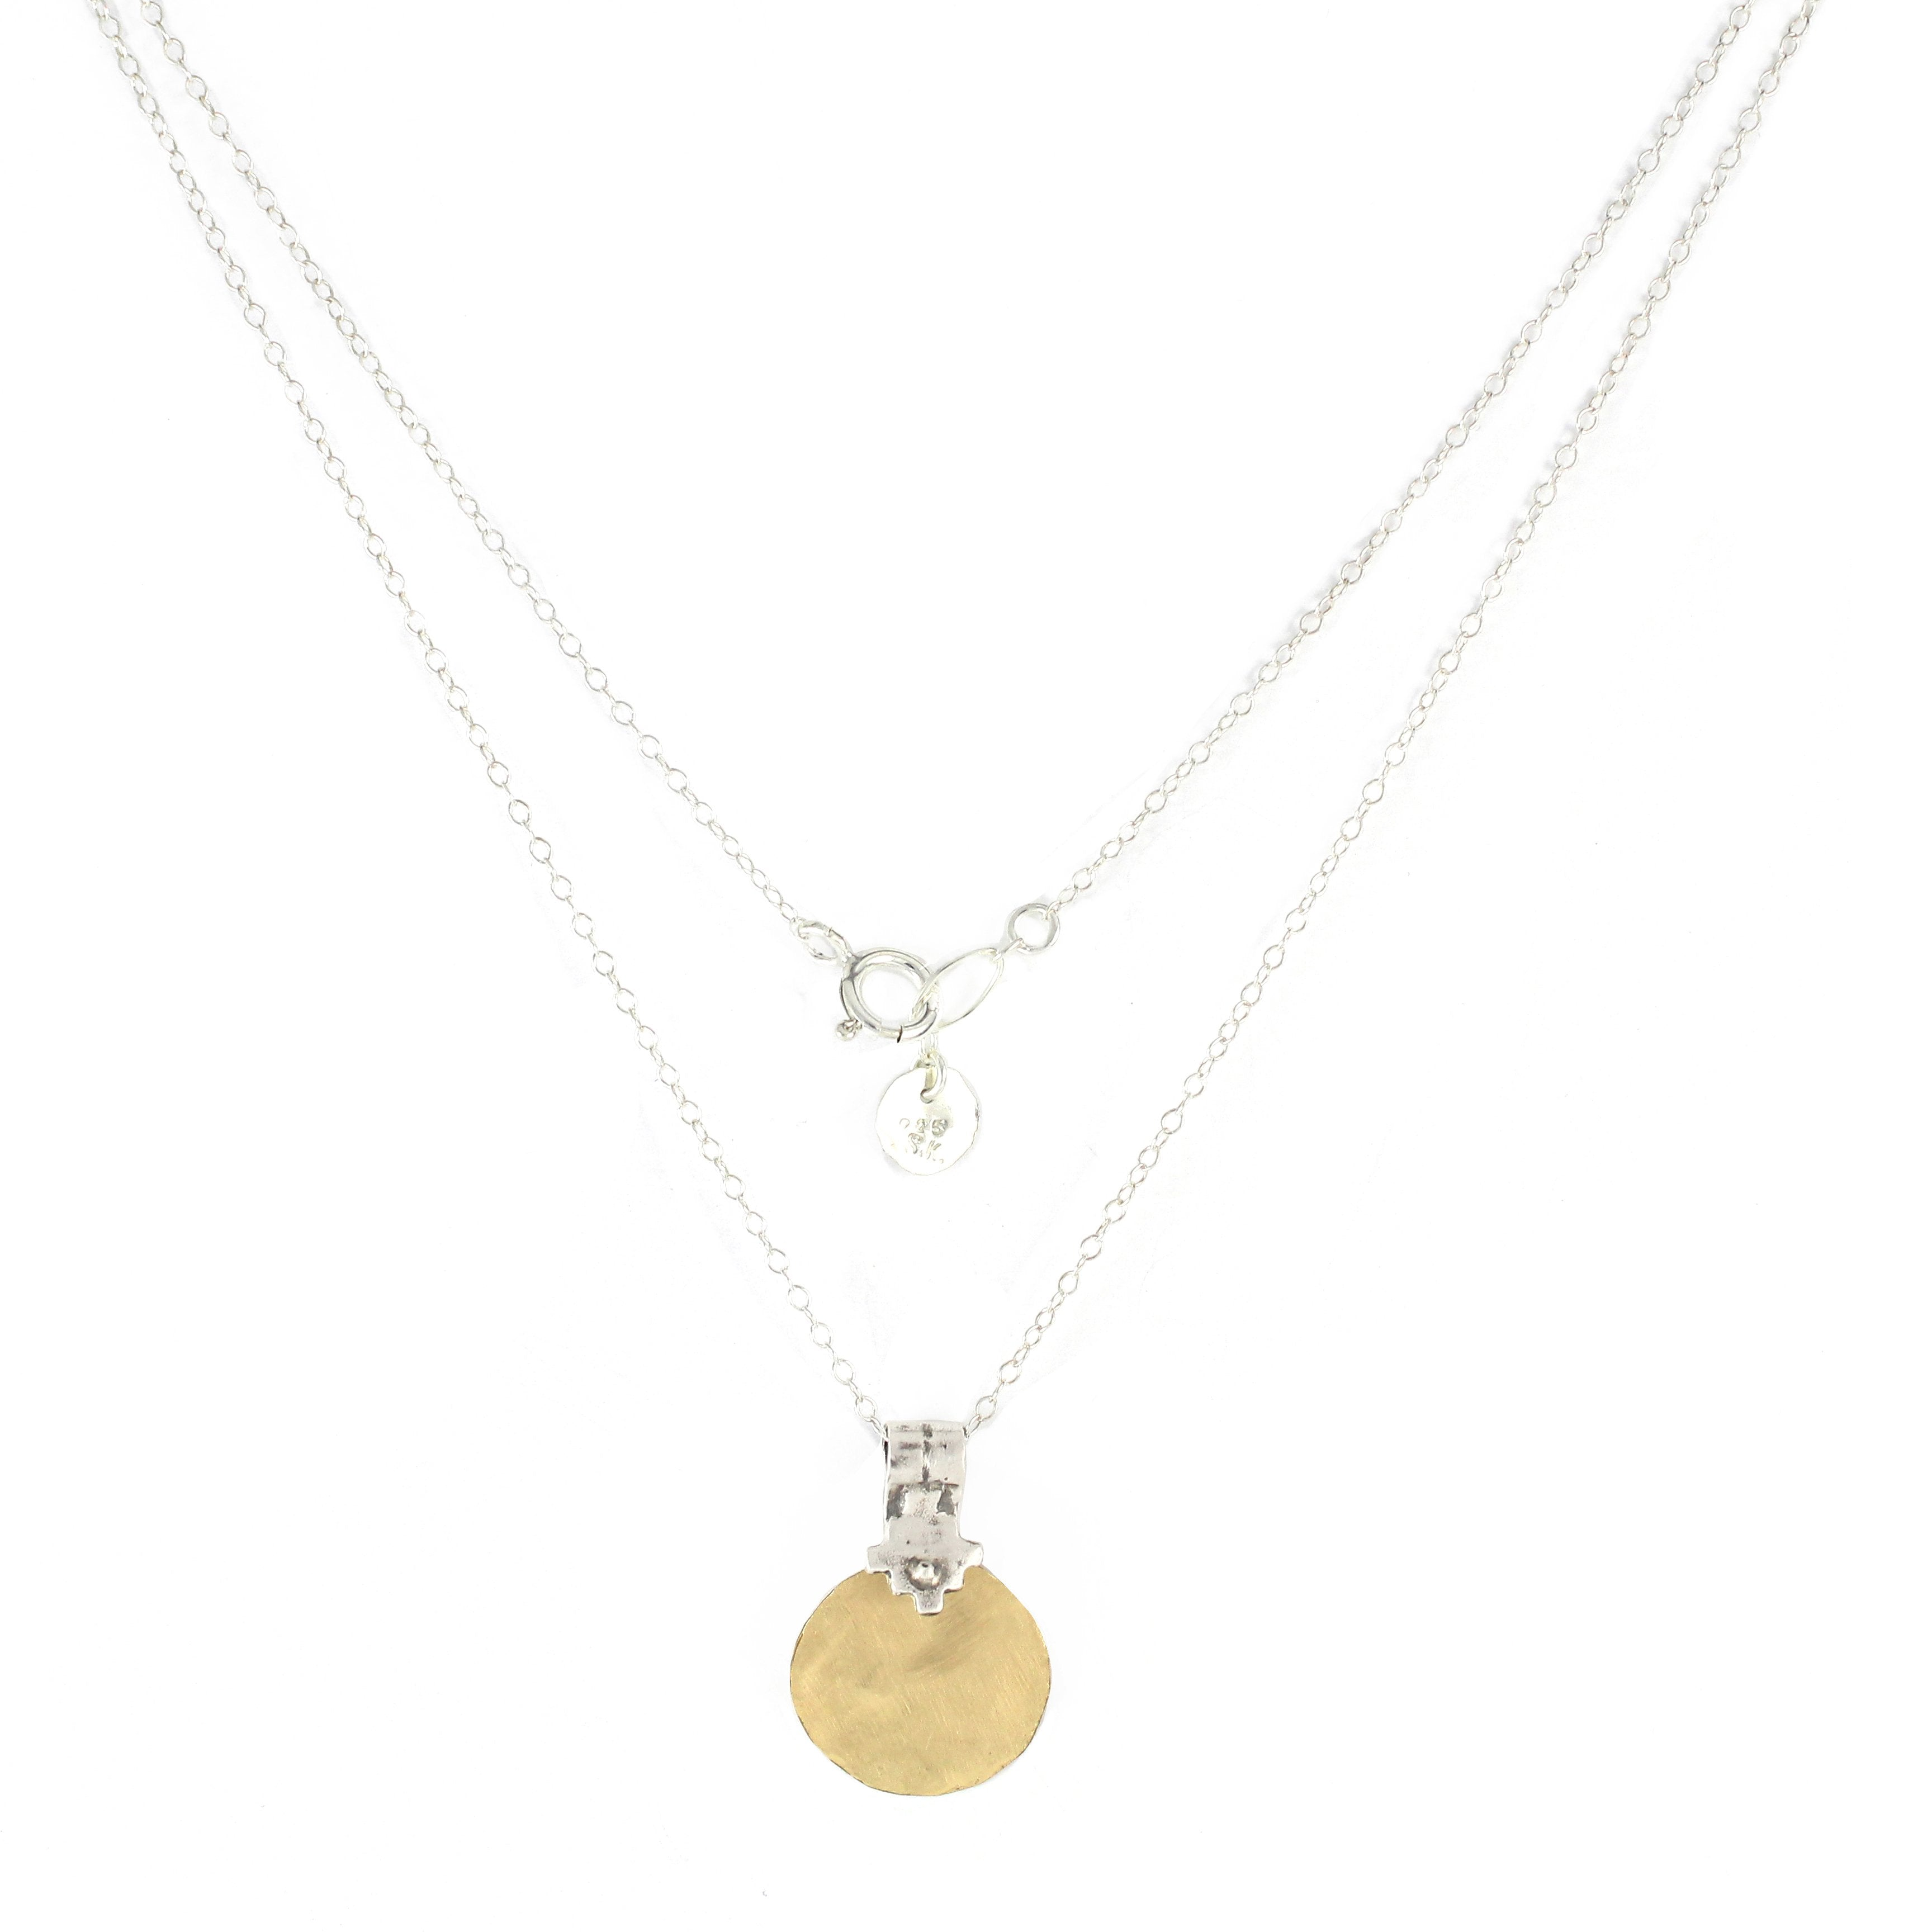 Western Moroccan Style Silver & Gold filled Medium-Small Pendant Necklace - Shulamit Kanter